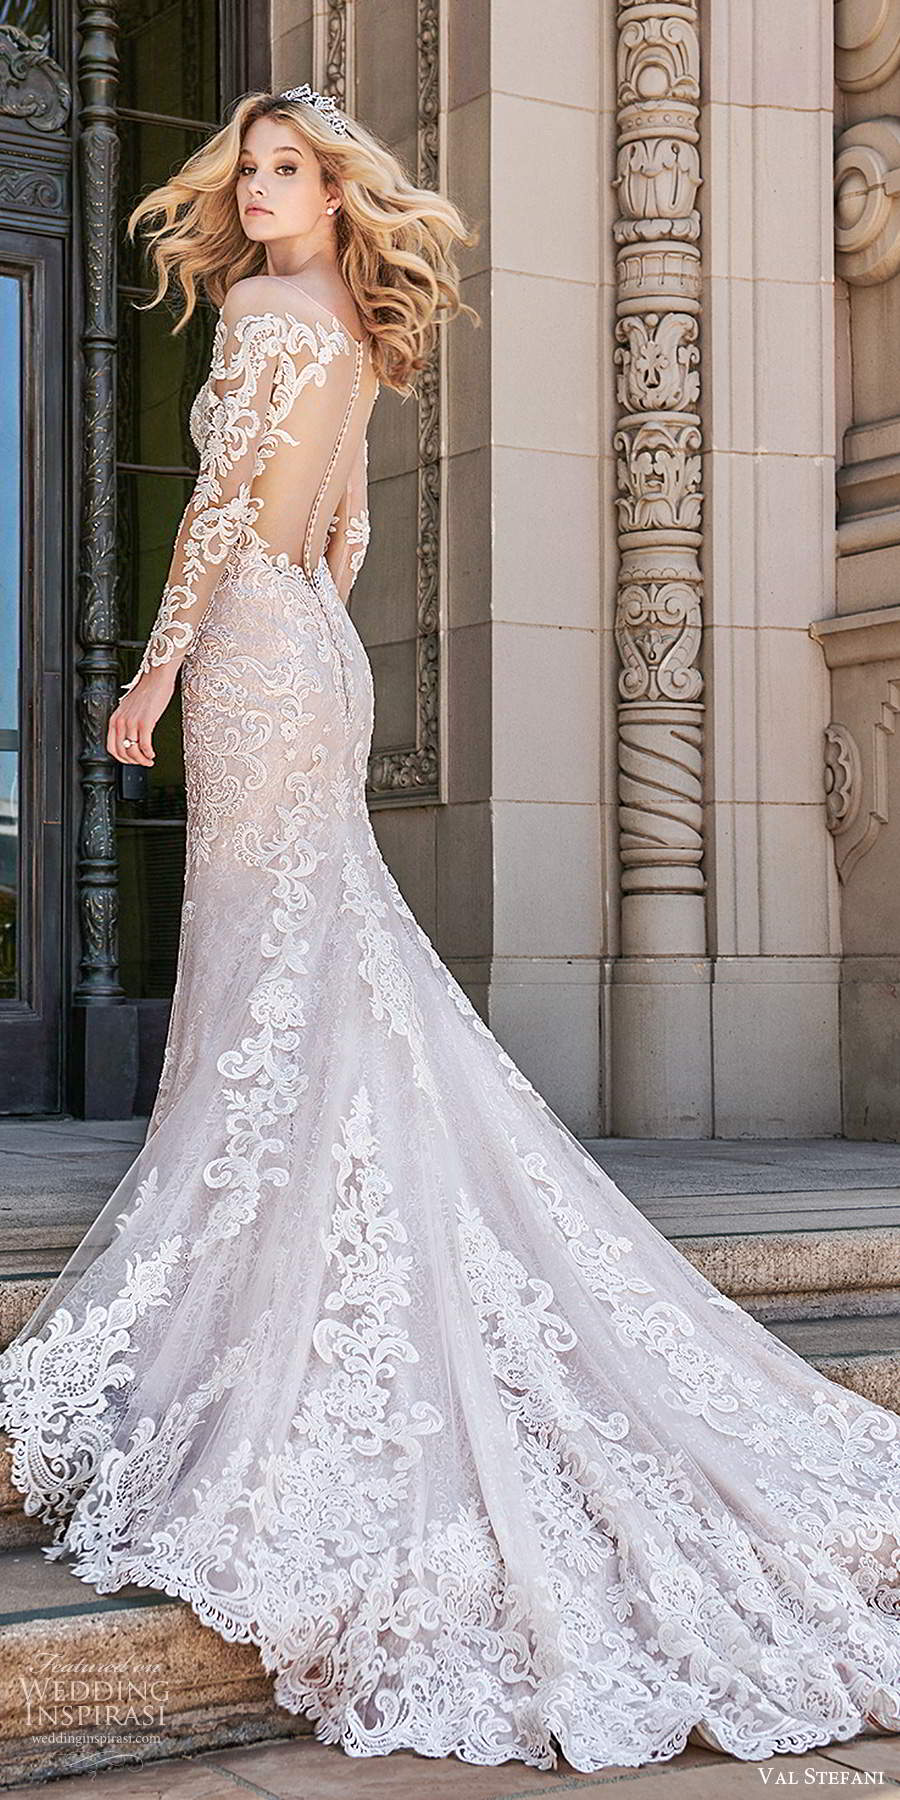 val stefani spring 2020 bridal illusion long sleeves sweetheart neckline fully embellished fit flare modified a line wedding dress illusion back cathedral train (1) bv